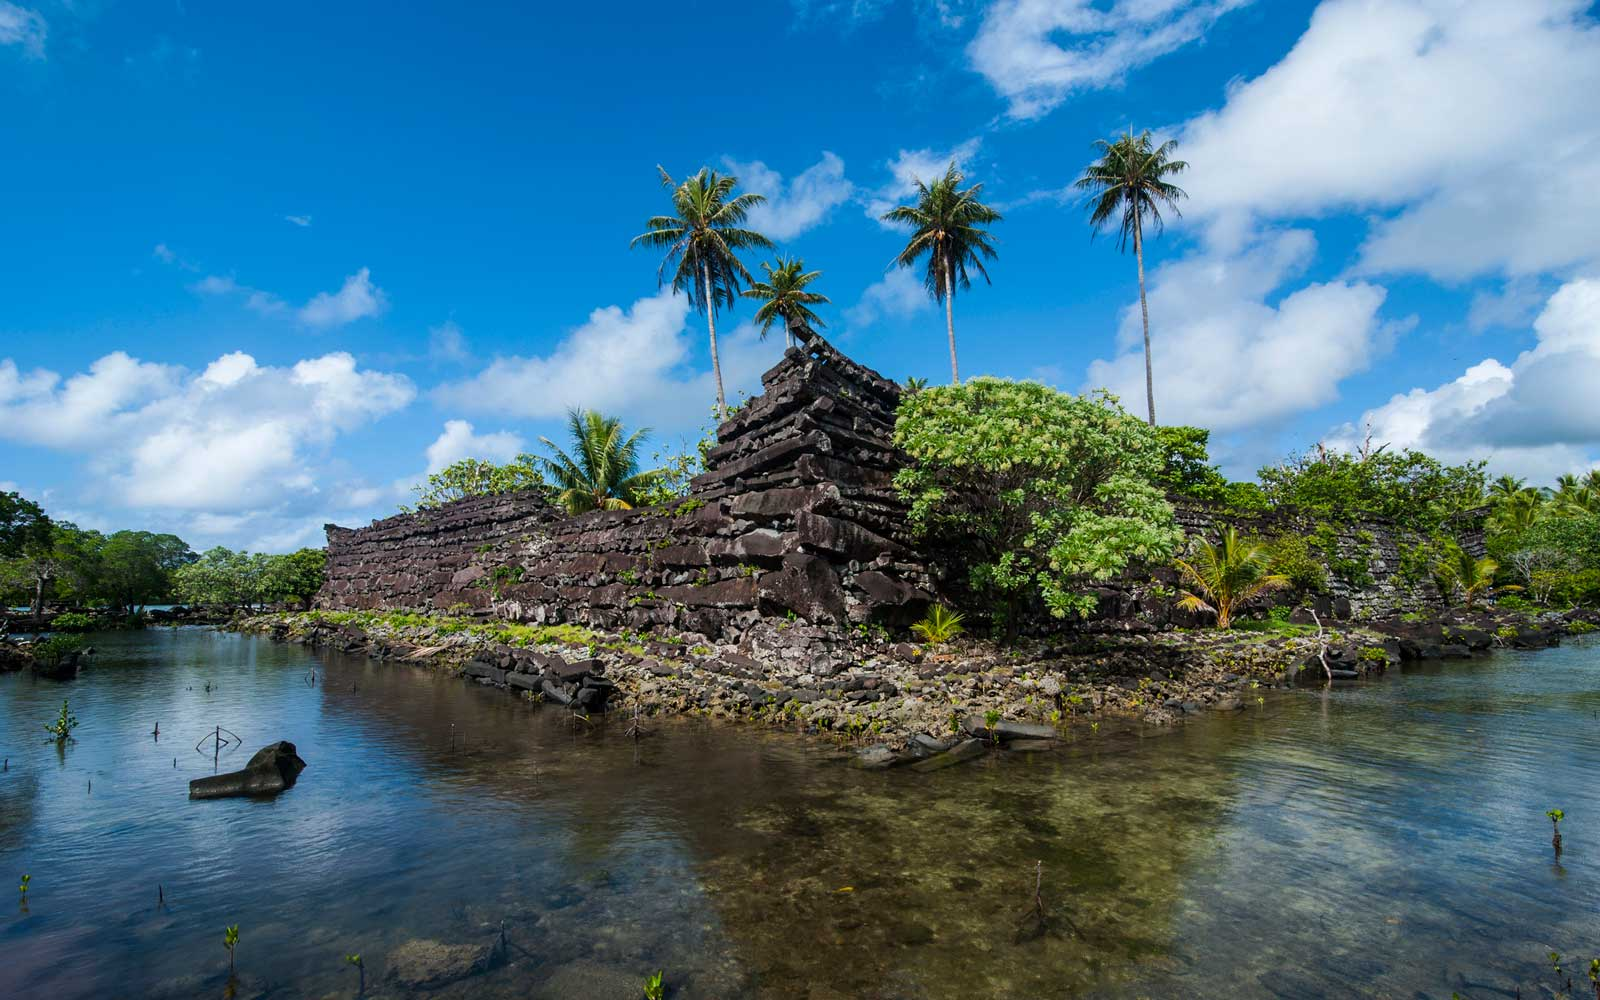 This Mysterious Island in the Pacific Ocean Is Rumored to Be Haunted